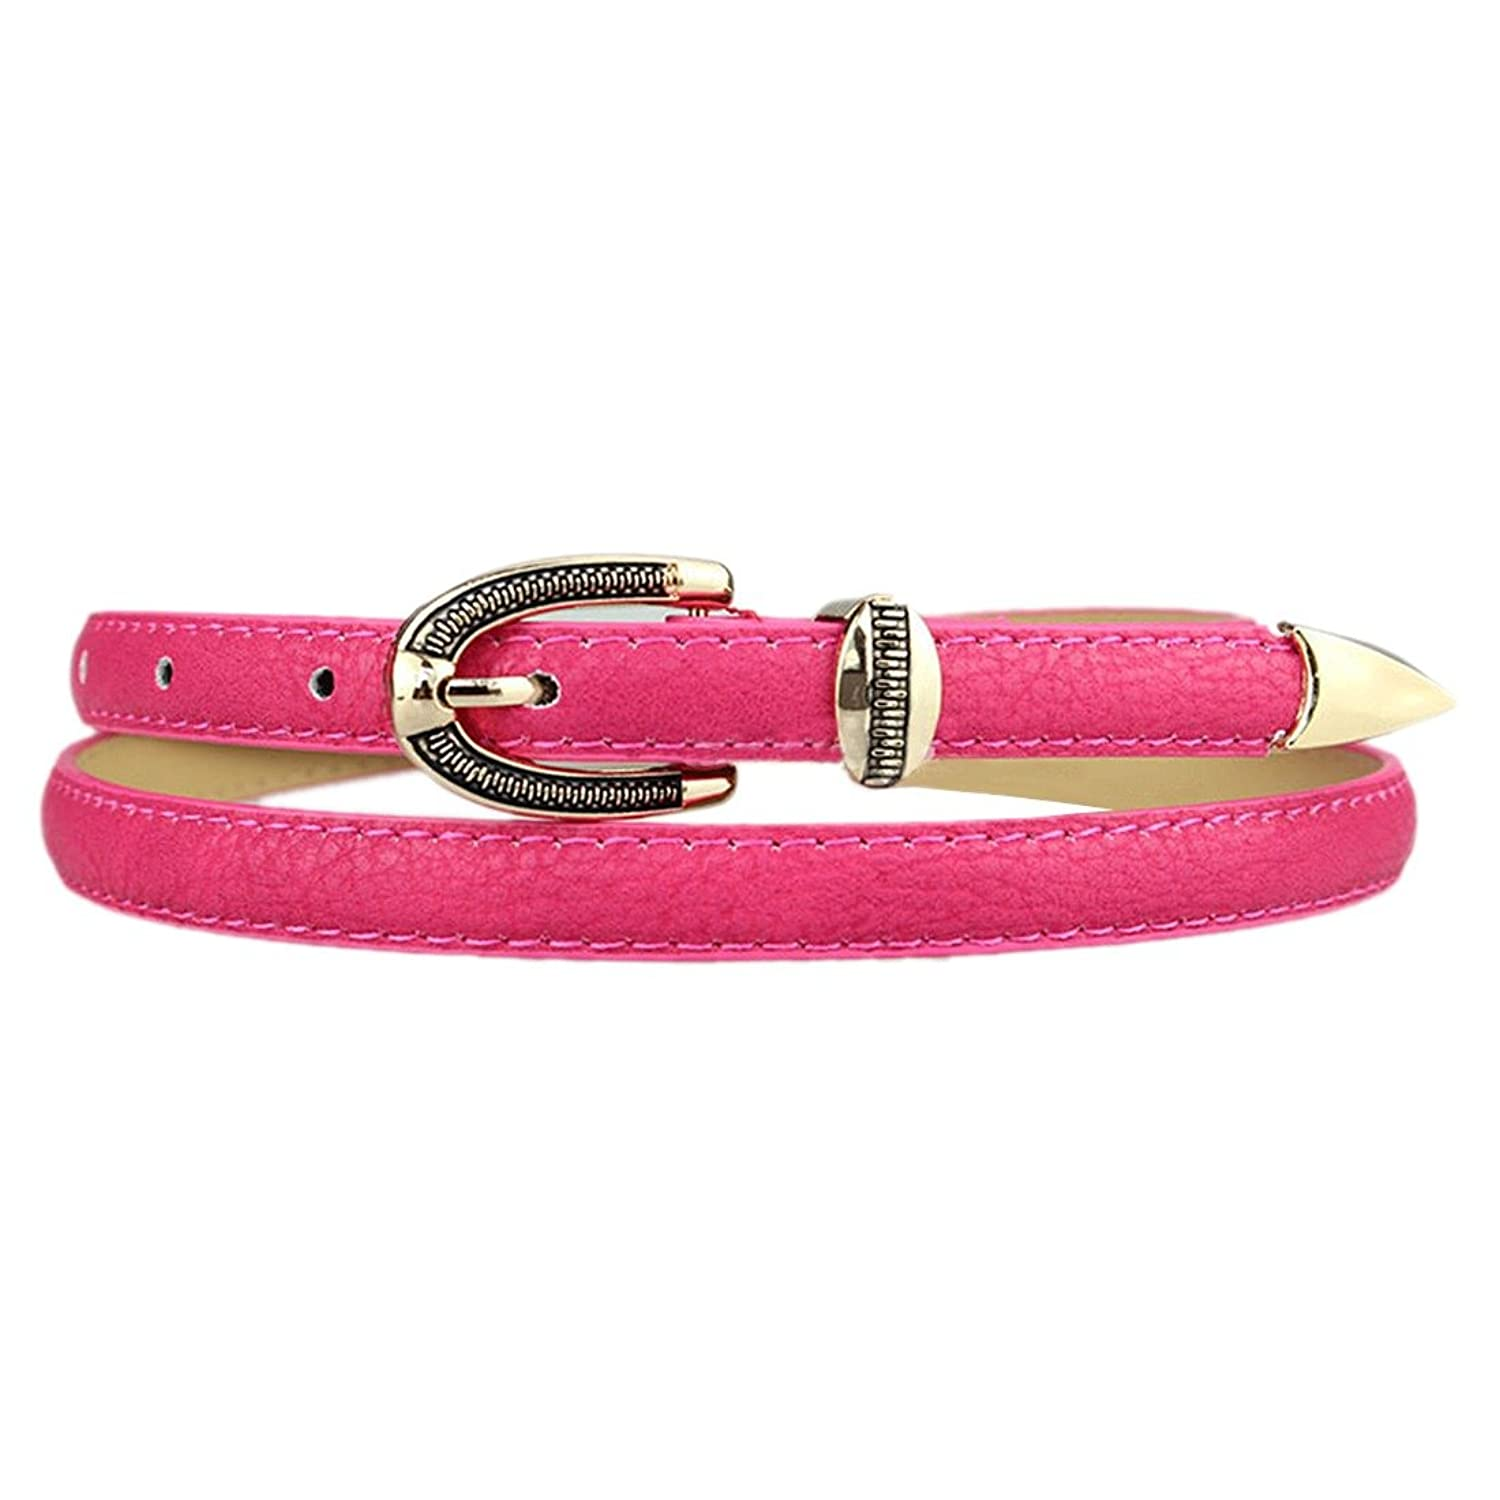 Vintage Women Colorful Waist Belt PU Leather Metal Buckle Thin Skinny Waistband